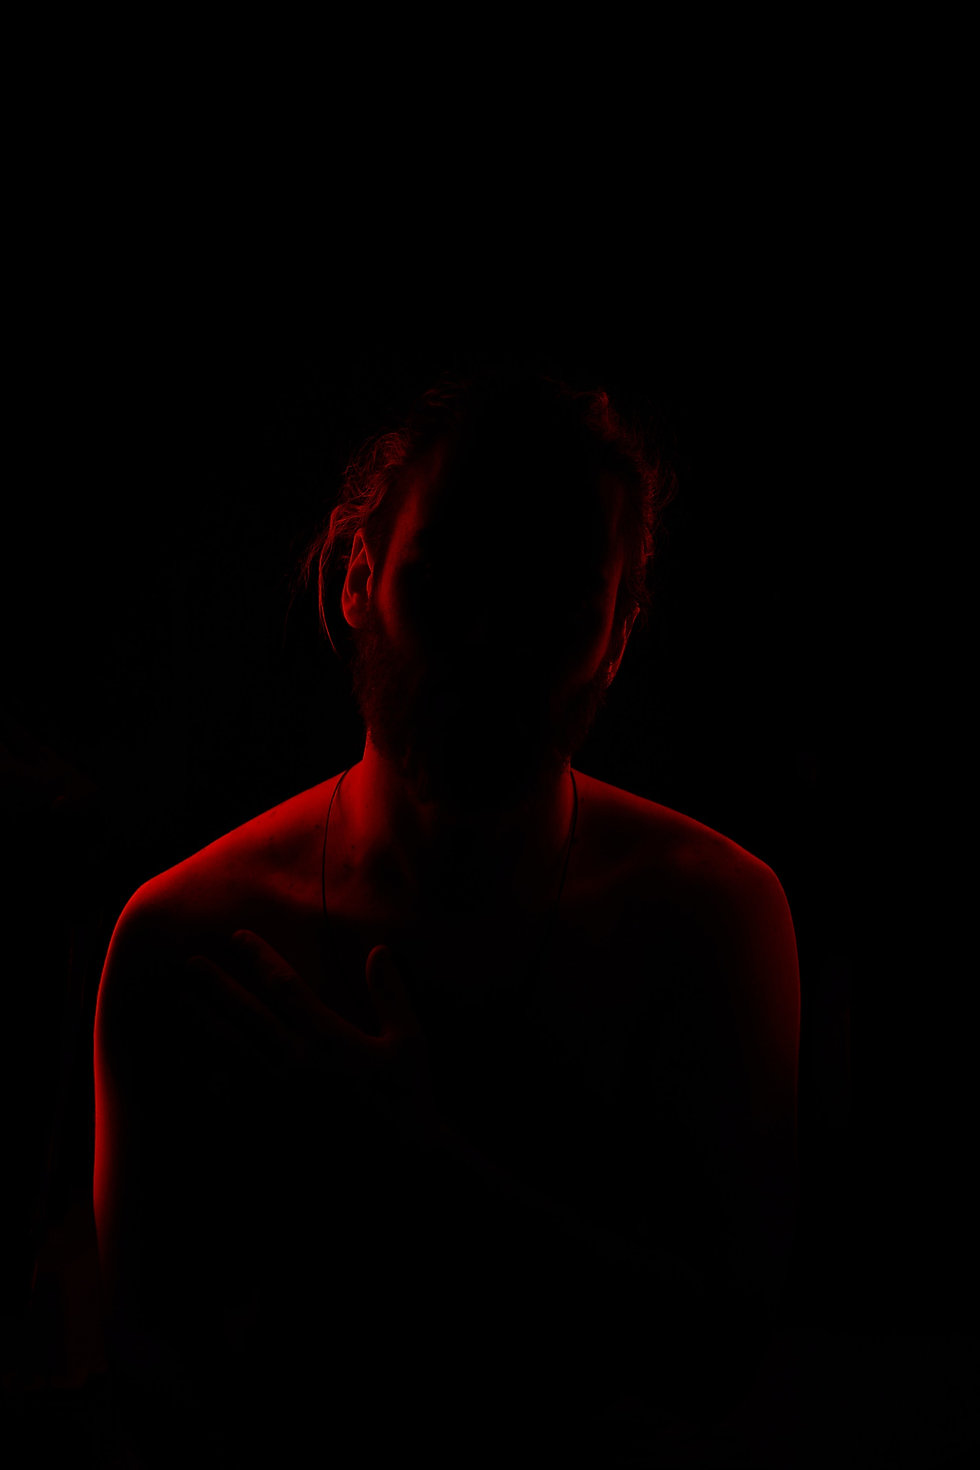 A male figure sitting in the dark with highlights of red lighting